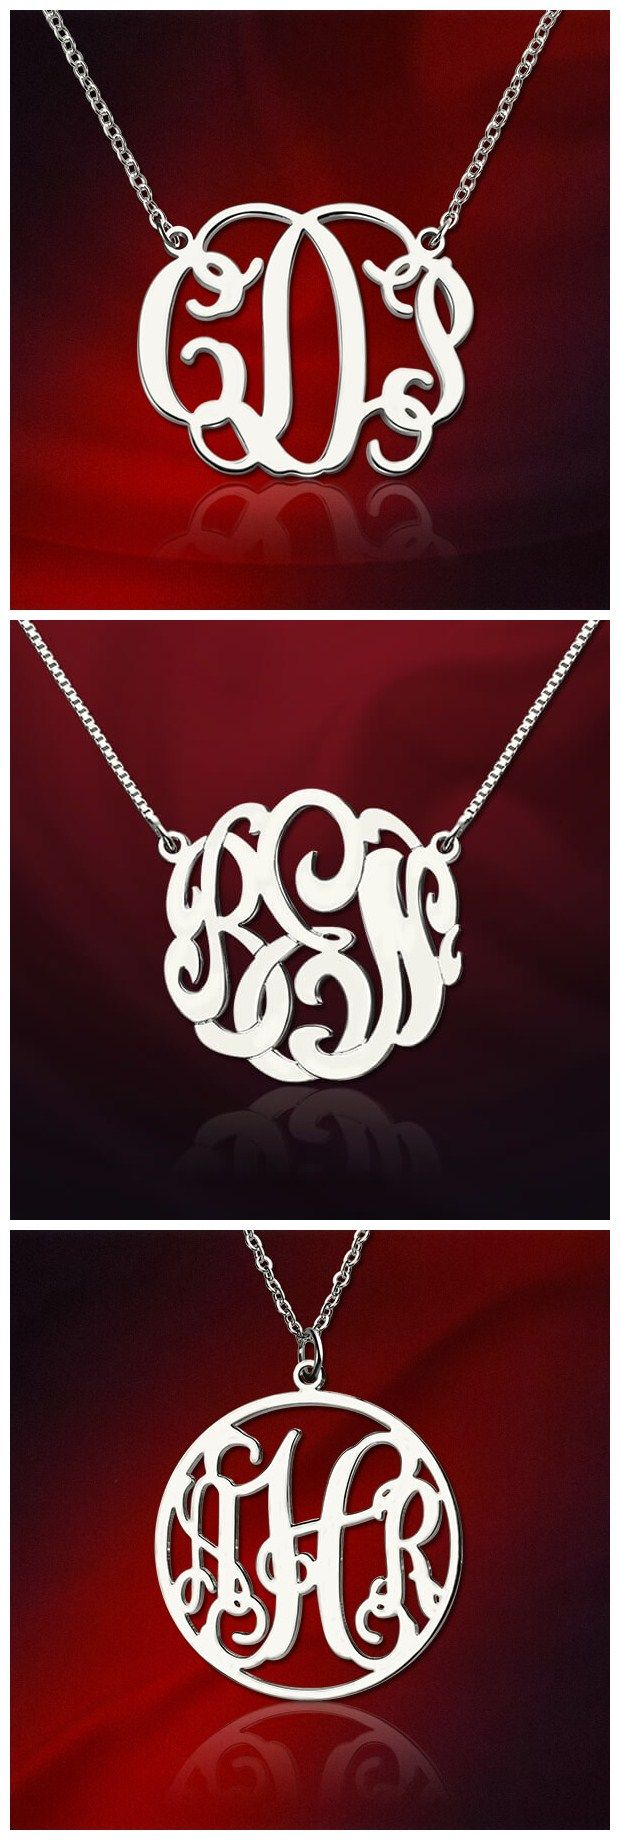 Enjoying the latest fashion trend that movie stars and famous singers have been wearing has never been so easy with the Sterling Silver Monogram Necklace! It is a funky way to show off your own style and uniqueness.Find more items at GETNAMENECKLACE .COM